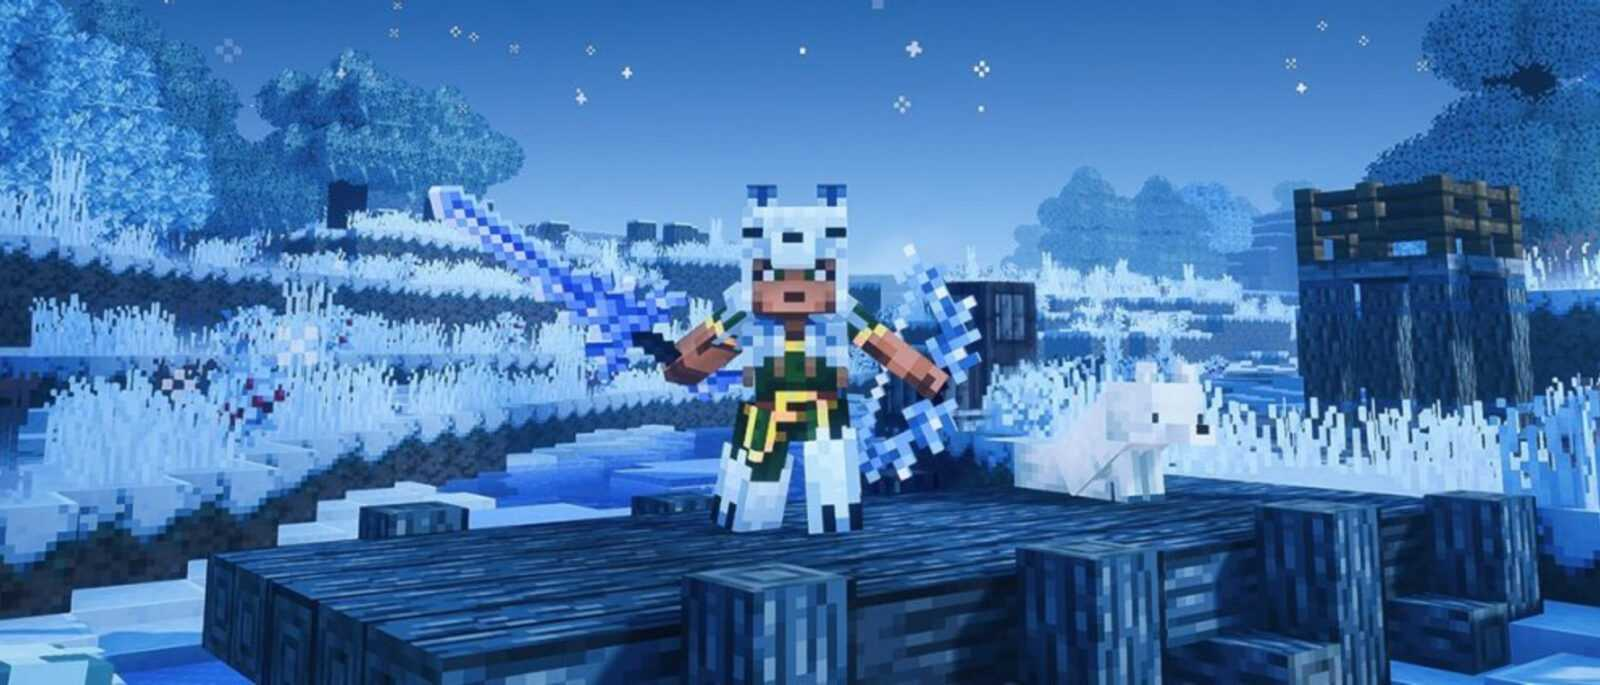 Minecraft Dungeons: Chills And Thrills Seasonal Event Is Live